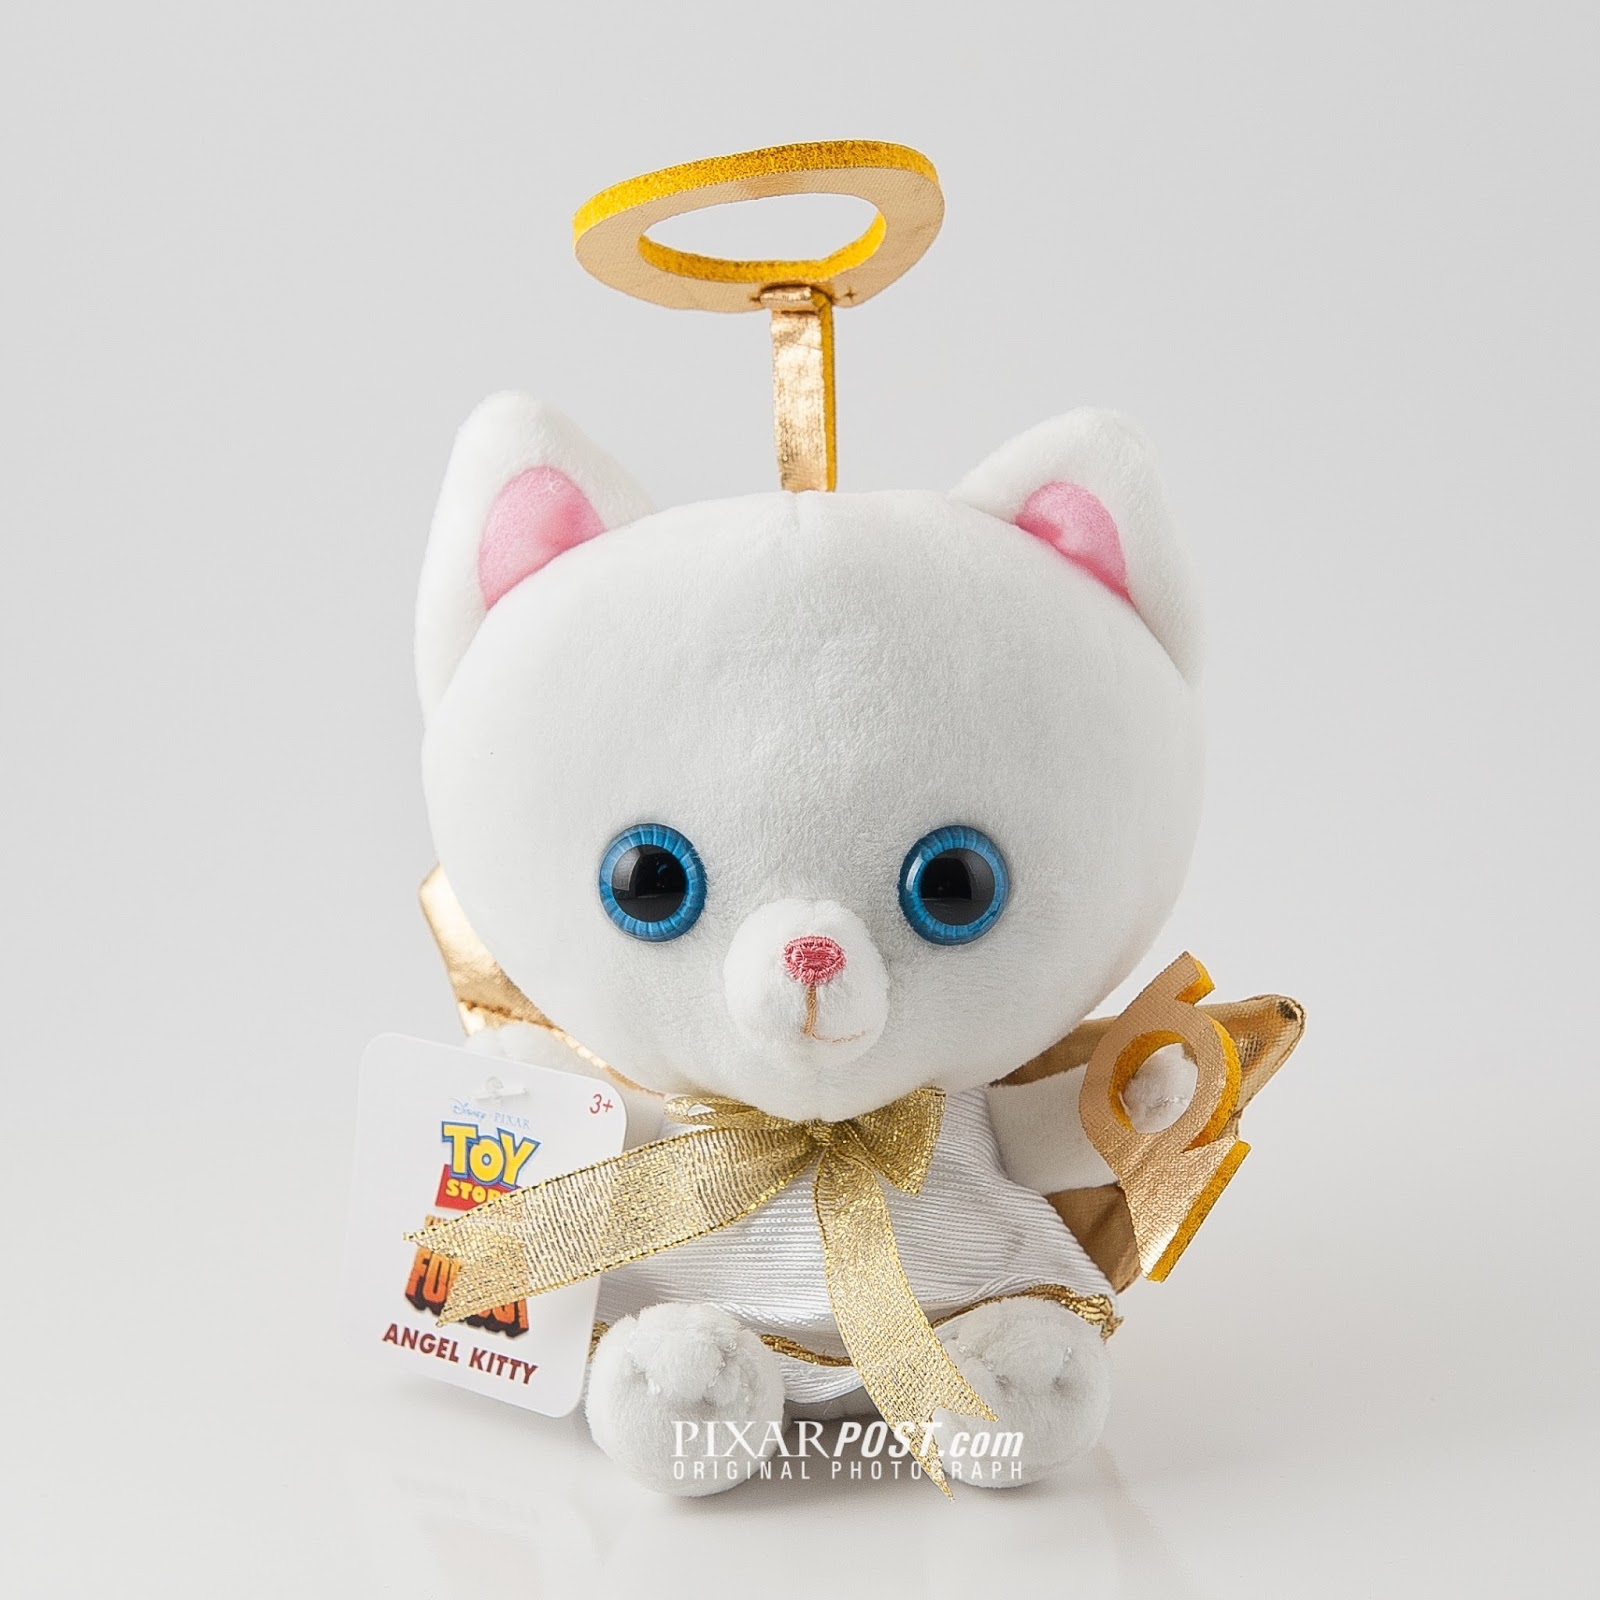 Angel Kitty And Mr Jones Toy Story Special Plush Toy Reviews